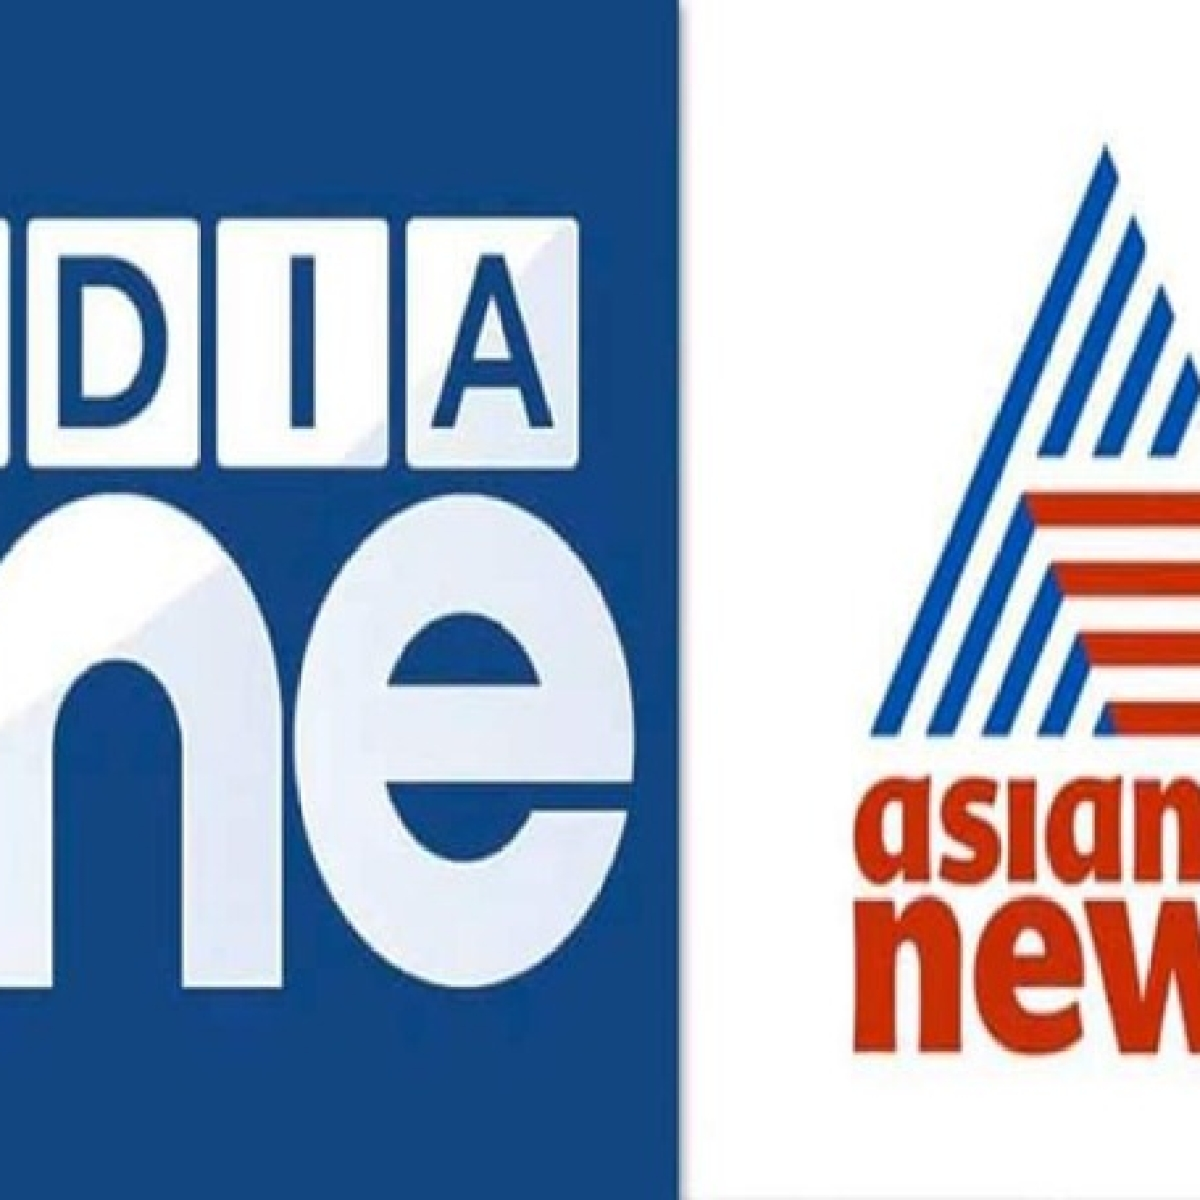 Emergency Redux? Two Kerala news channels off the air for reporting Delhi Violence